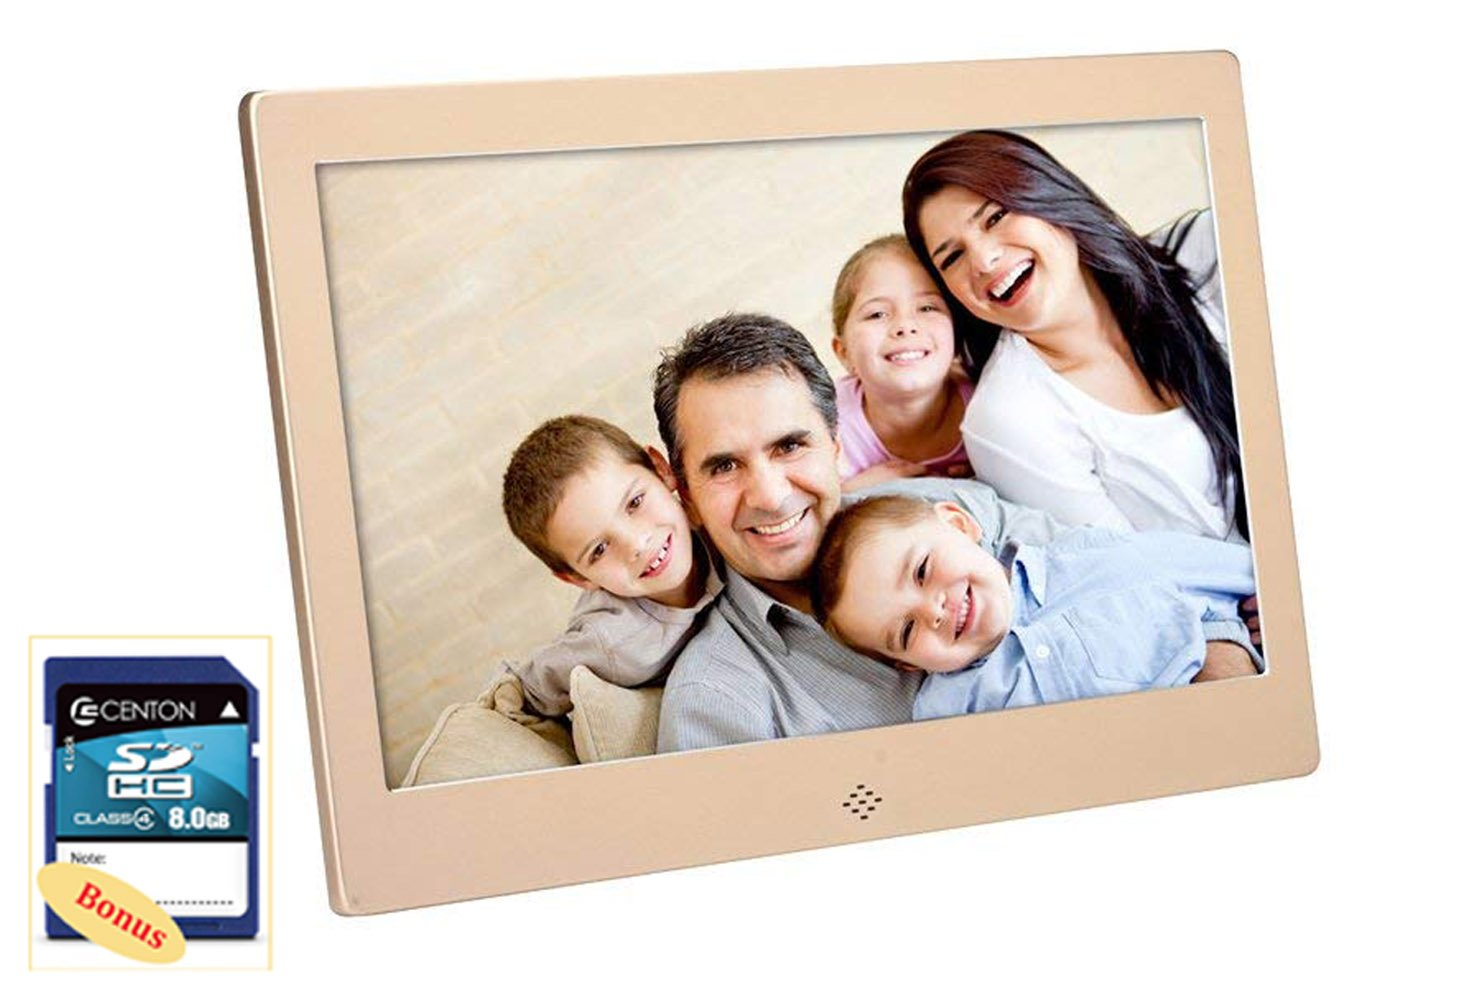 FashionUp 10-Inch DH Digital Photo Frame 1024x600 High Resolution for Wall Mount or Tabletop Use, 8GB Storage Digital Picture Frame with Remote Control Built-in Slideshow SD Card USB Flash Drive ports